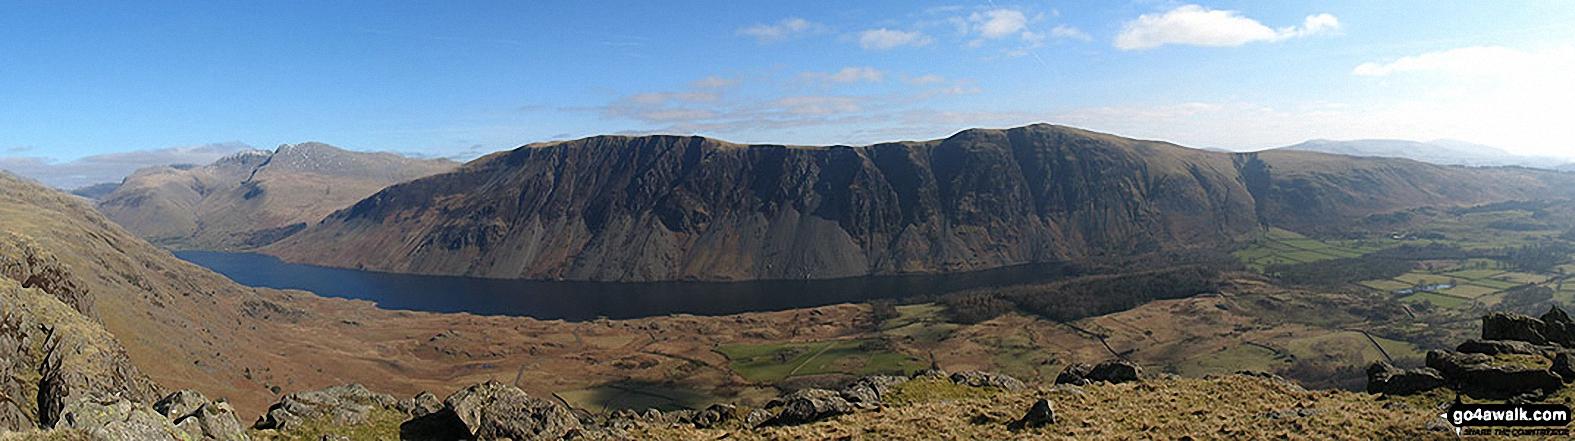 Wast Water with the Scafel Massive (far left- featuring Ling Mell, Great End, Broad Crag, Ill Crag, Scafell Pike, Symonds Knott and Sca Fell) and Illgill Head (centre) and Whin Rigg (centre right) above the Wast Water screes from Buckbarrow